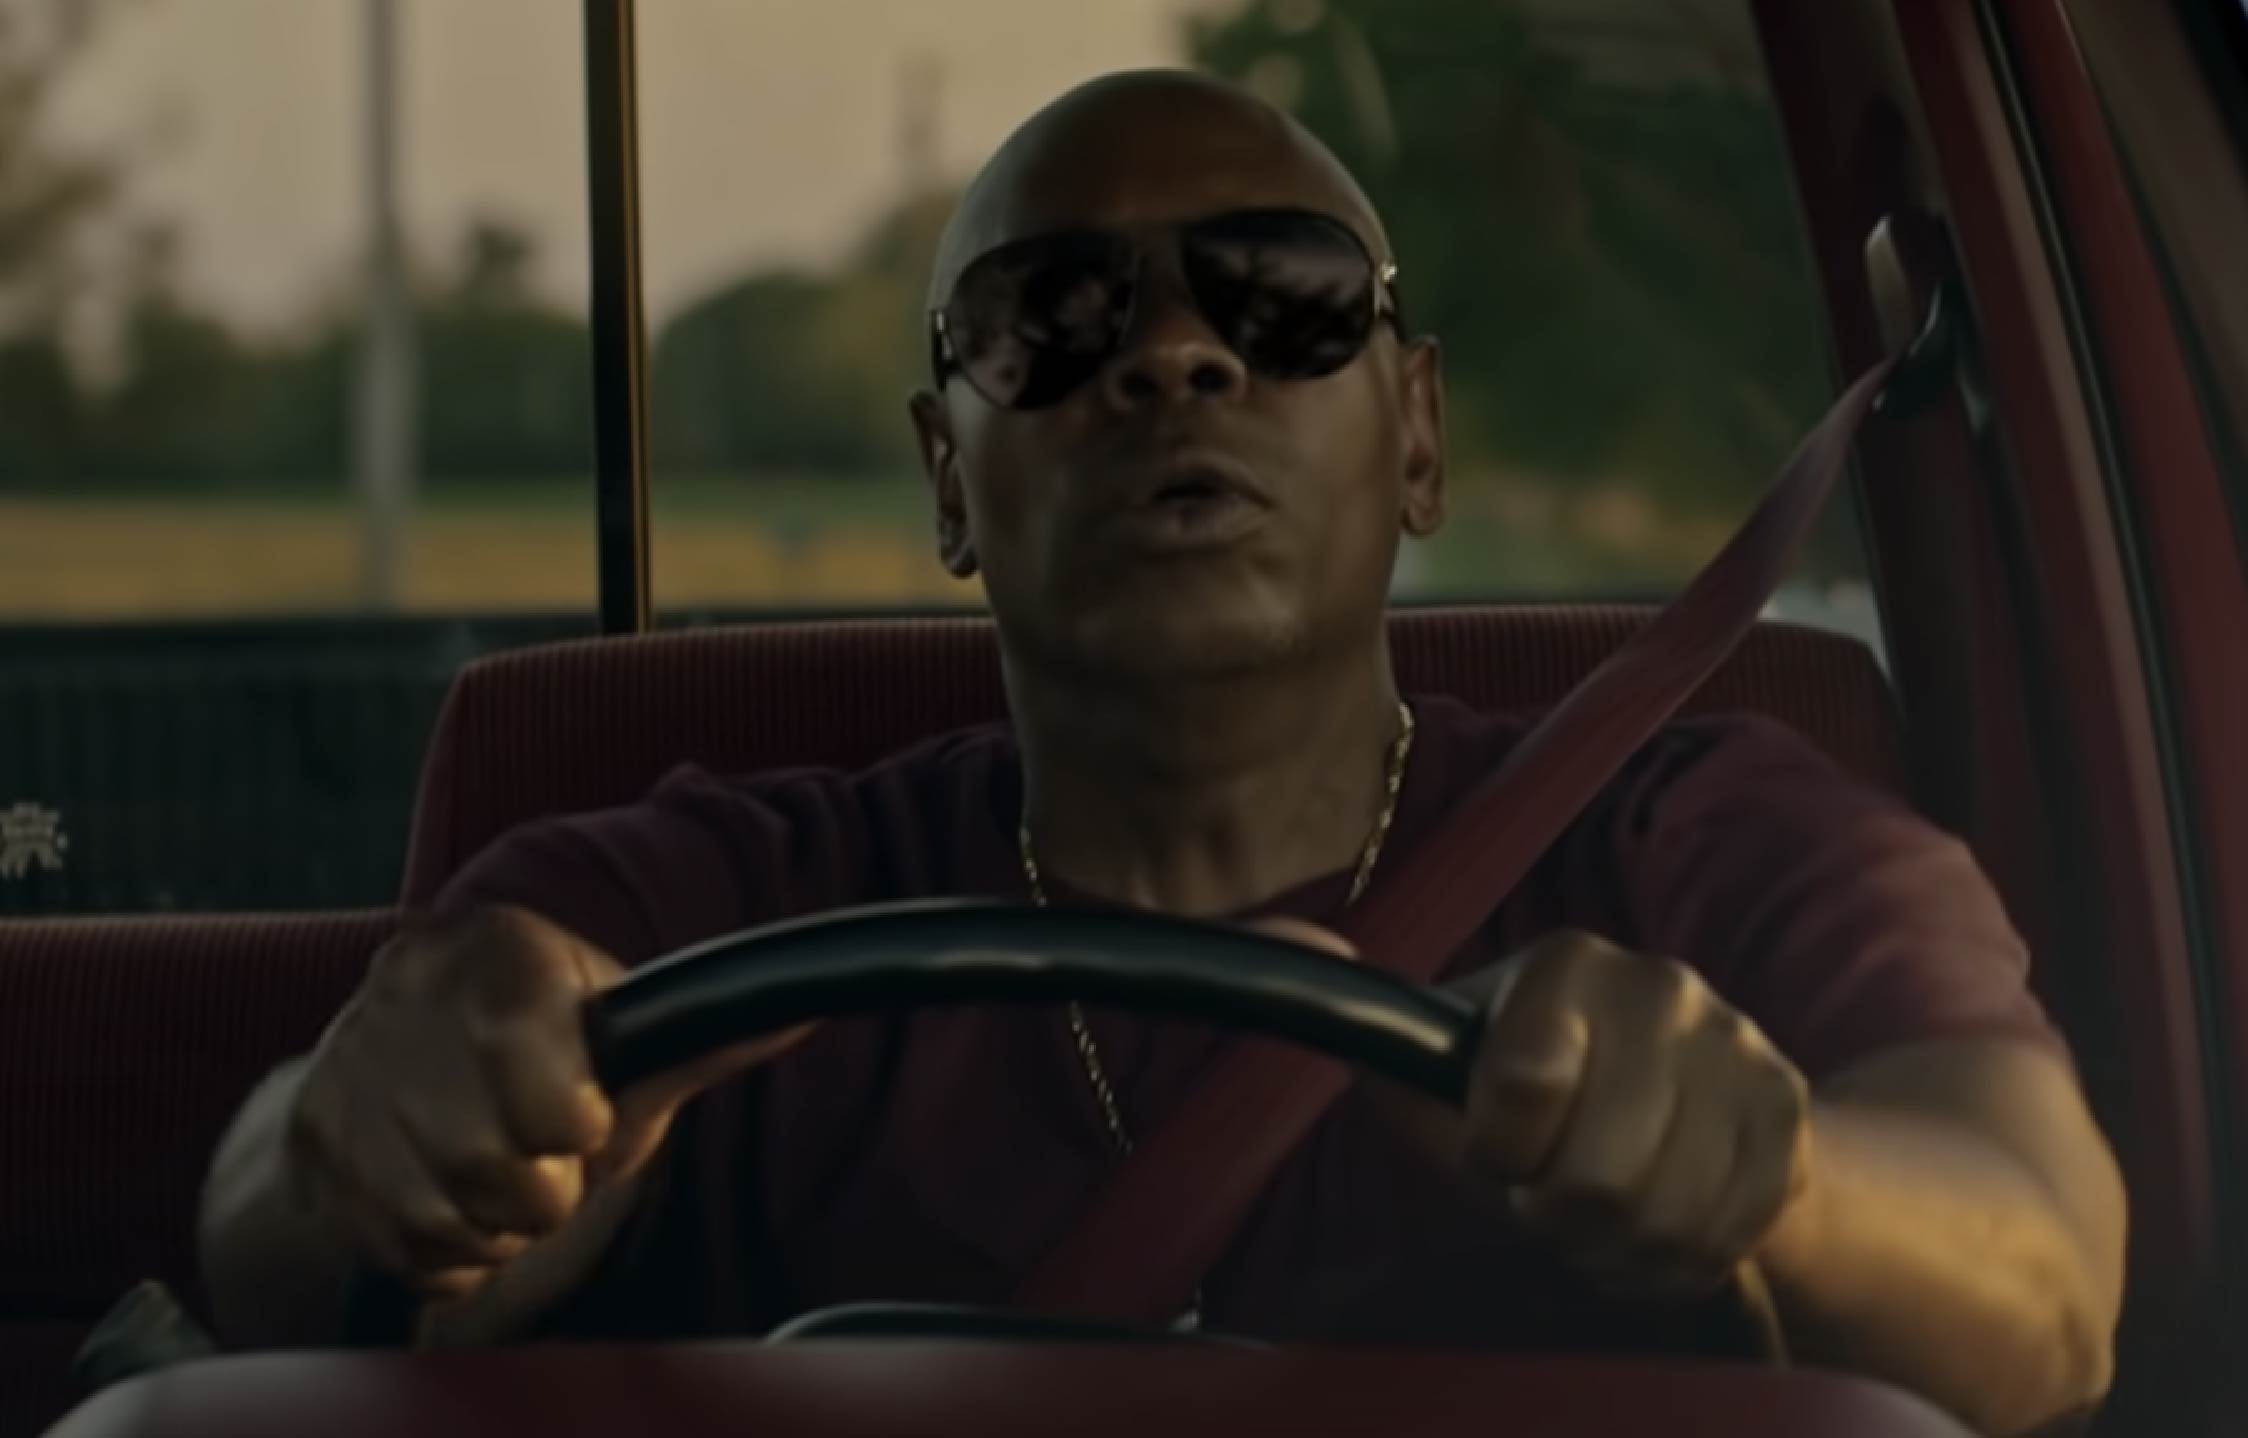 [VIDEO] Dave Chappelle is Back and Once Again He's Making The Commies on The Left Squirm